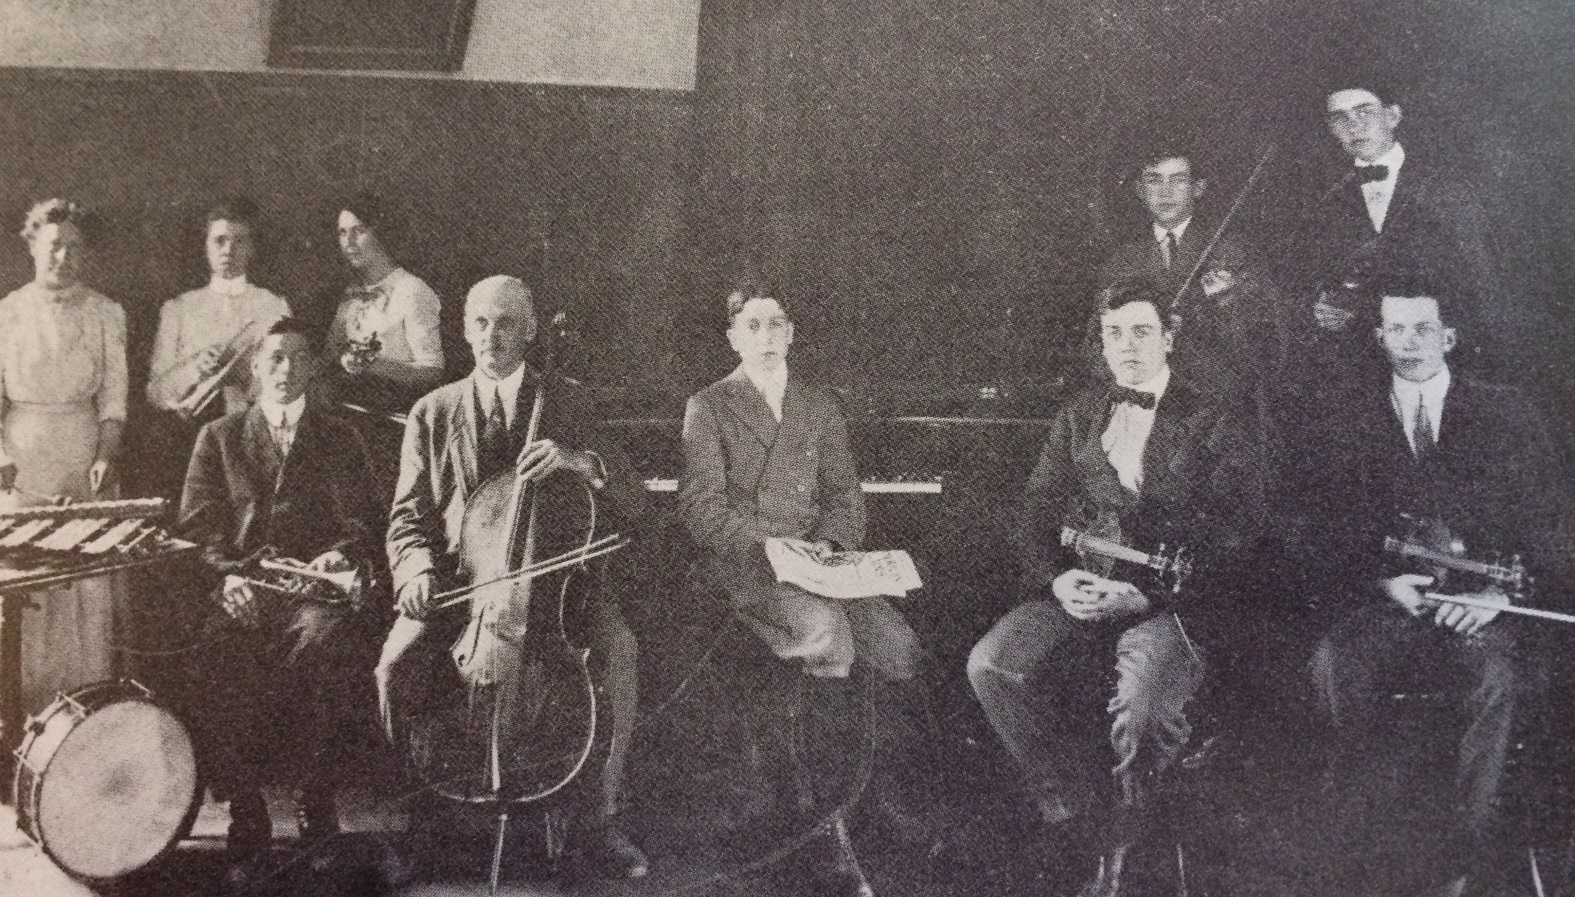 Hitchcock Academy has a long history with music as an important part of its mission, as reflected in this 1912 photo of the Hitchcock Orchestra.